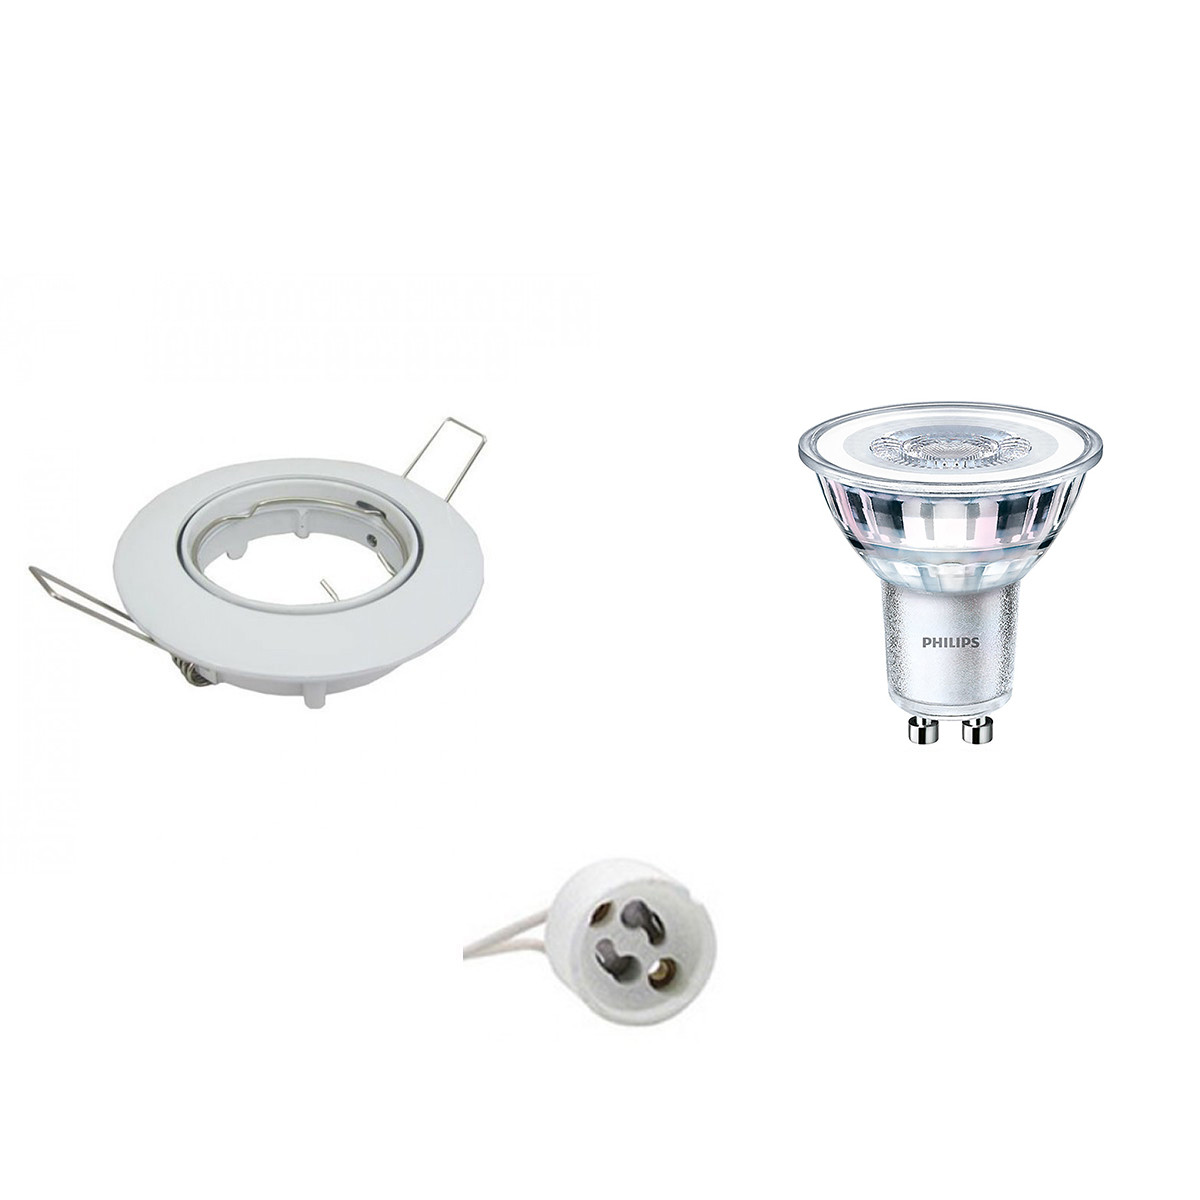 PHILIPS - LED Spot Set - CorePro 840 36D - GU10 Fitting - Dimbaar - Inbouw Rond - Glans Wit - 5W - N